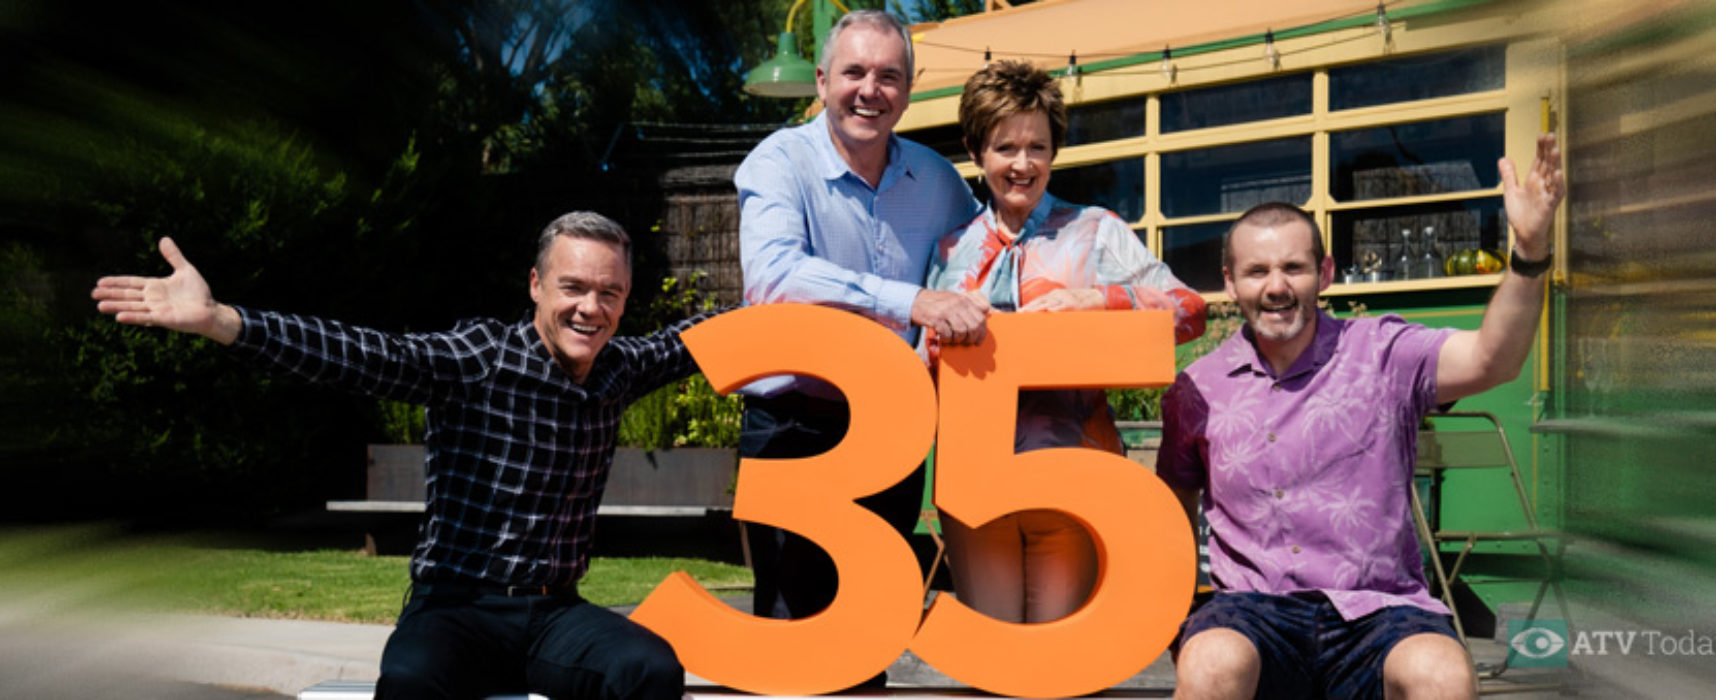 Neighbours goes primetime for 35th Anniversary